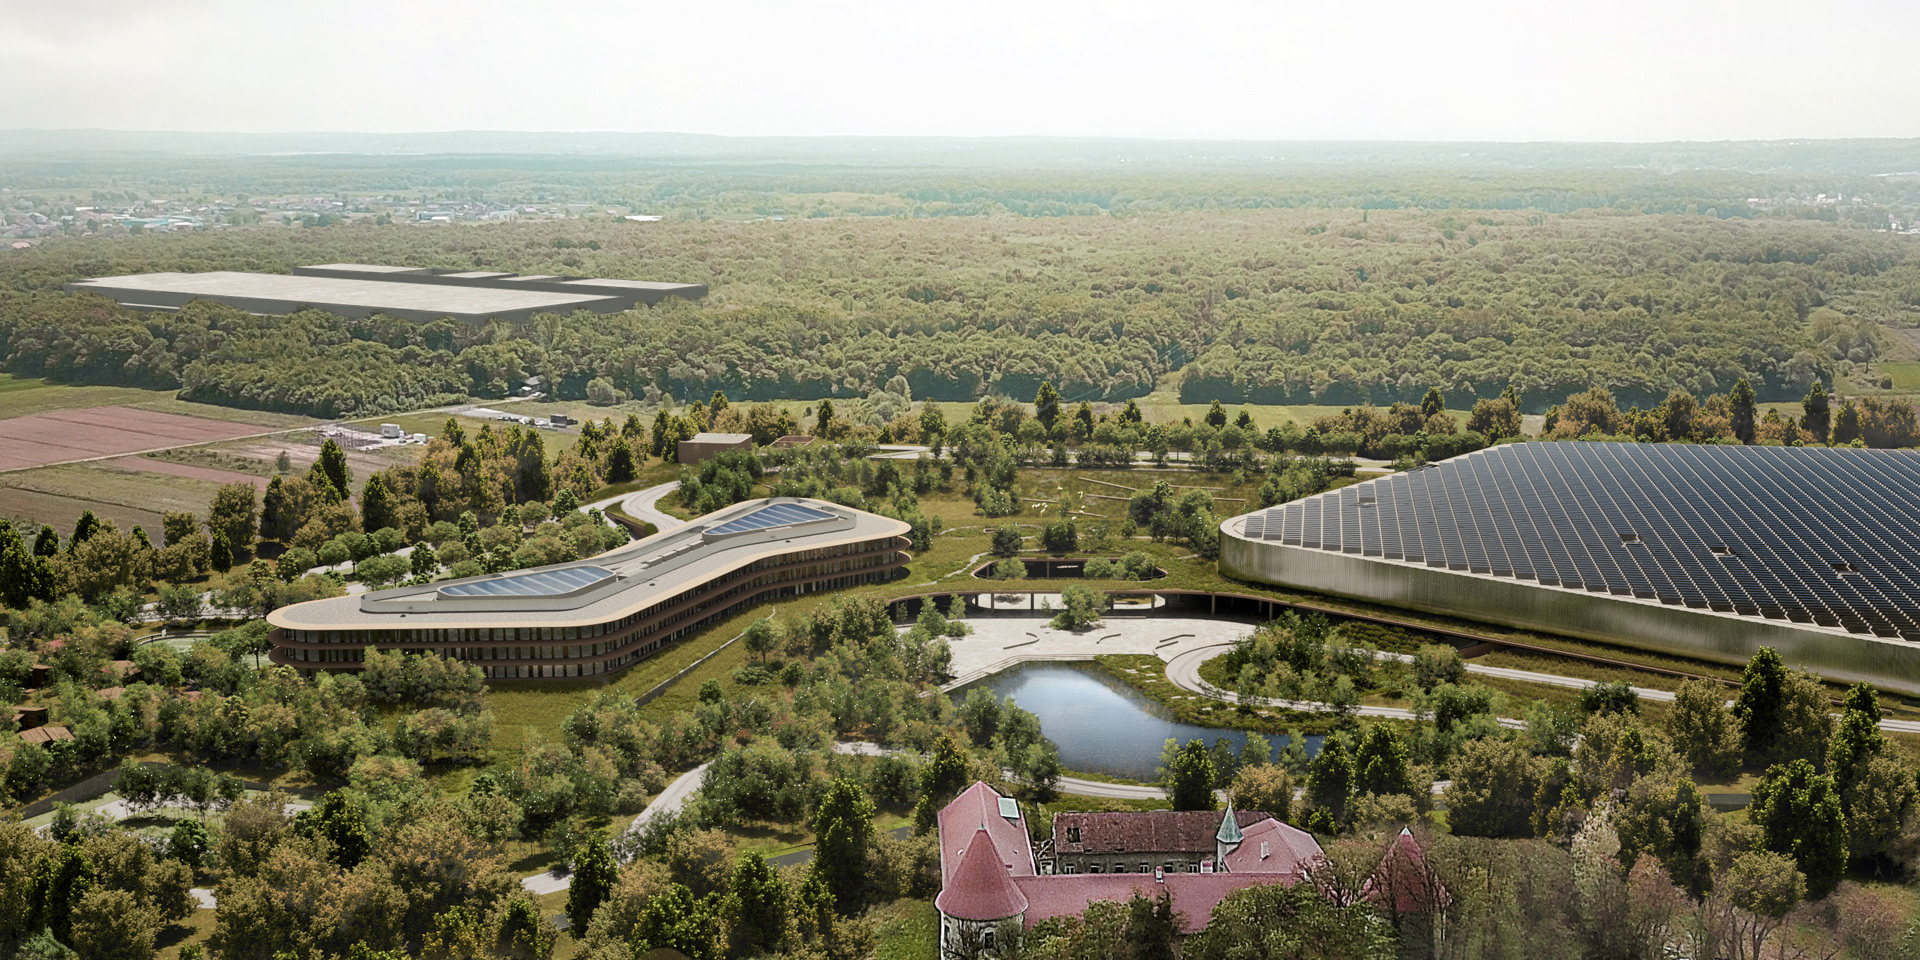 Rimac reveals plans for new headquarters and technology campus